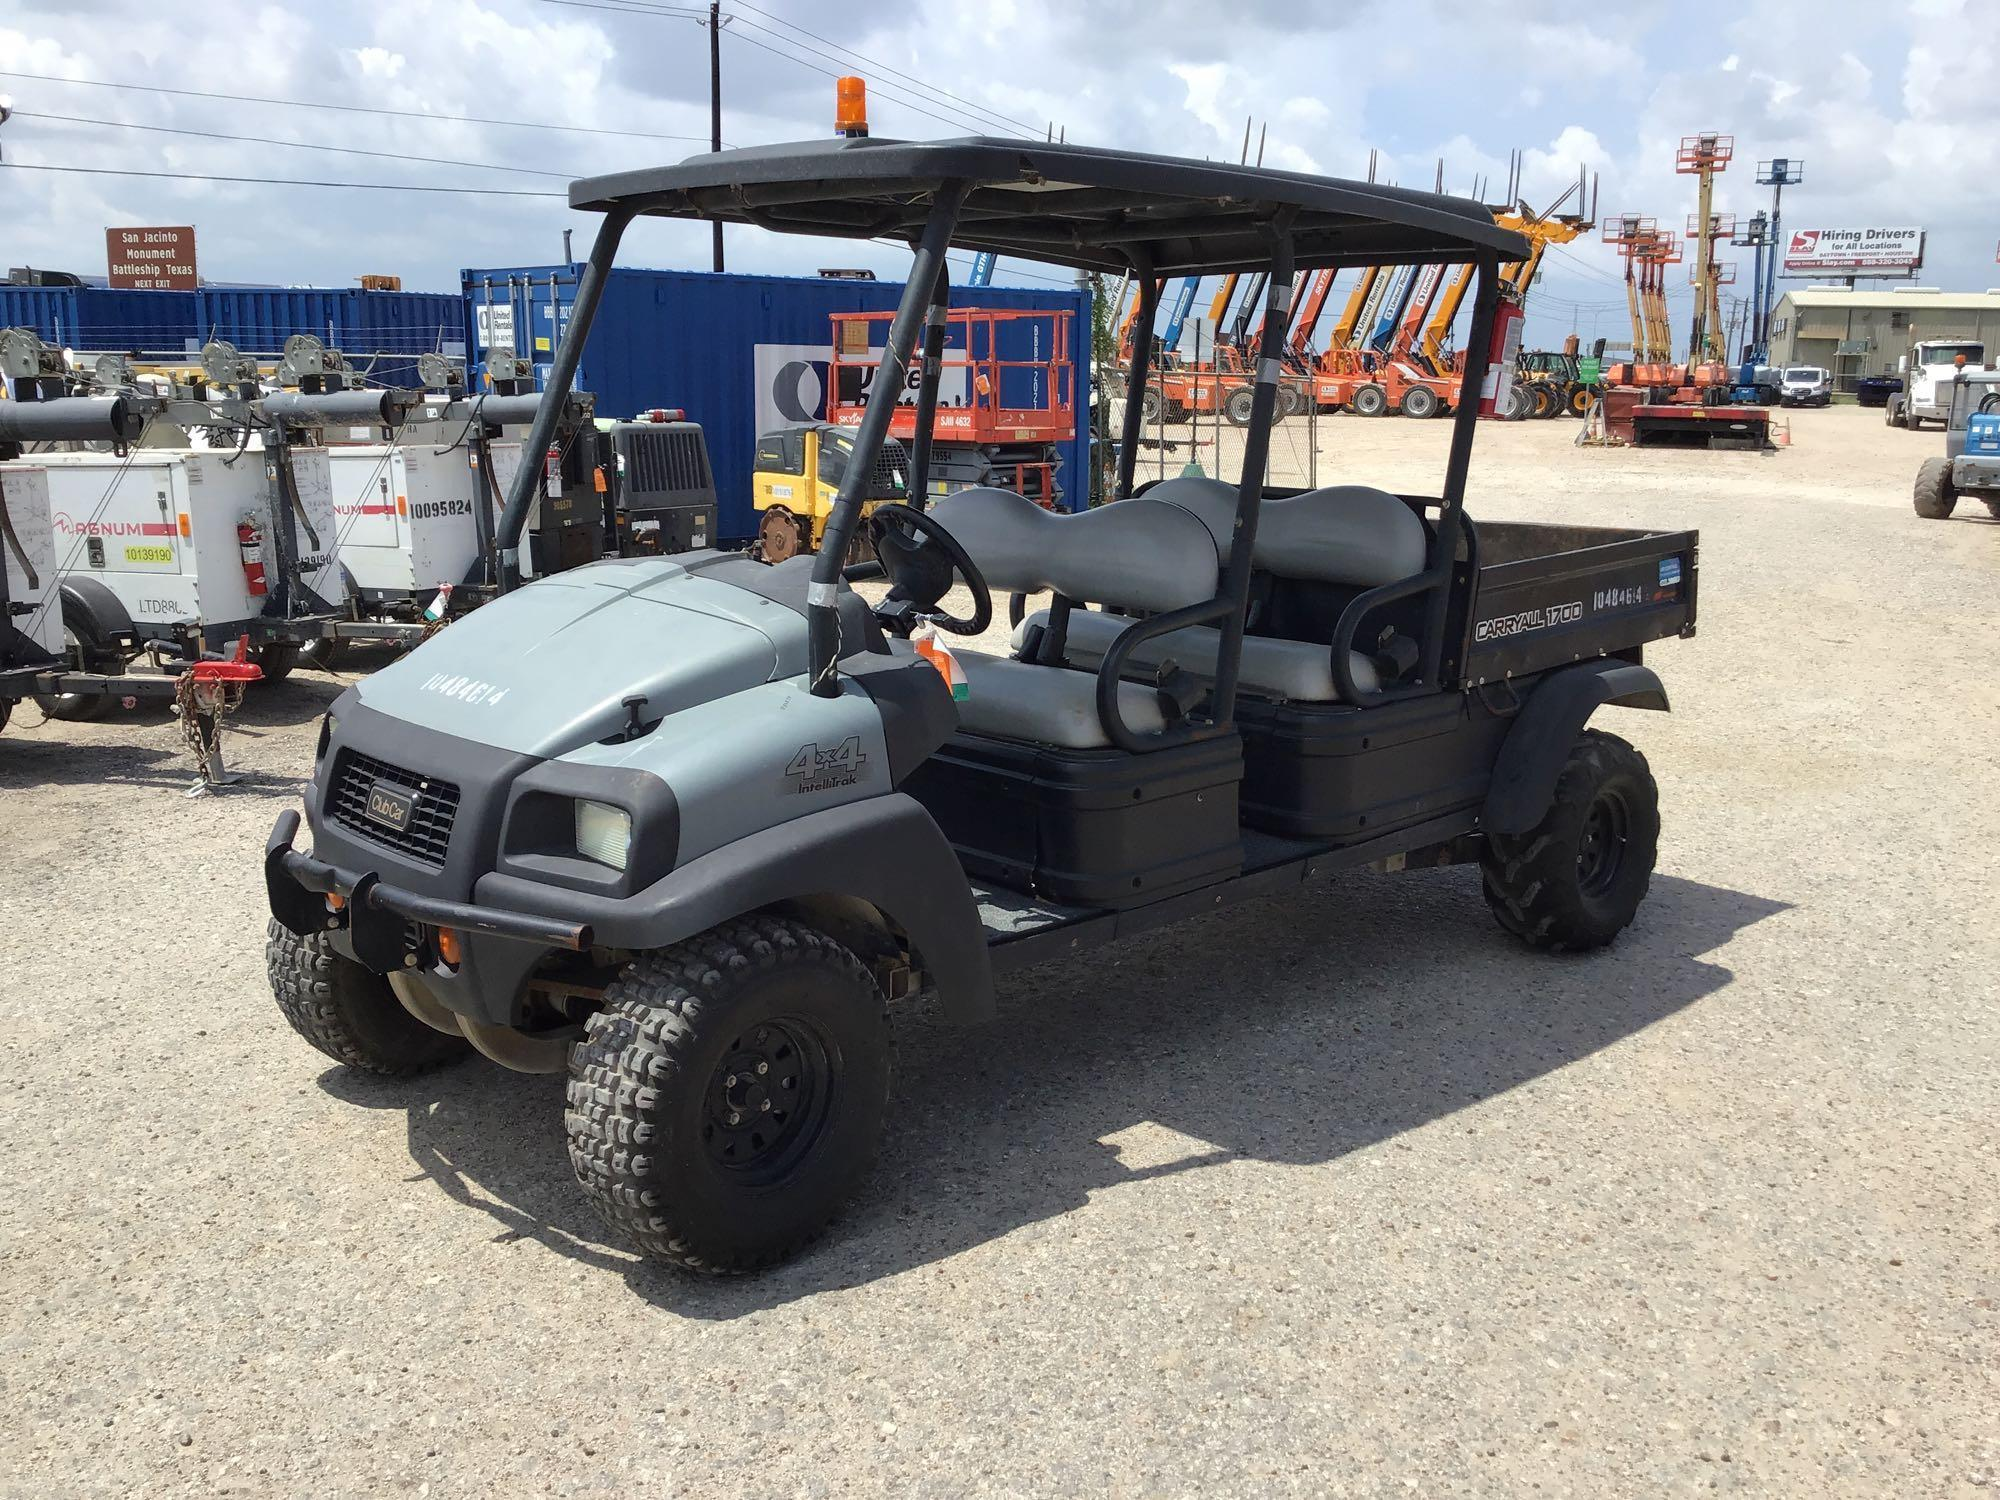 2016 CLUB CAR CARRYALL 1700 UTILITY VEHICLE